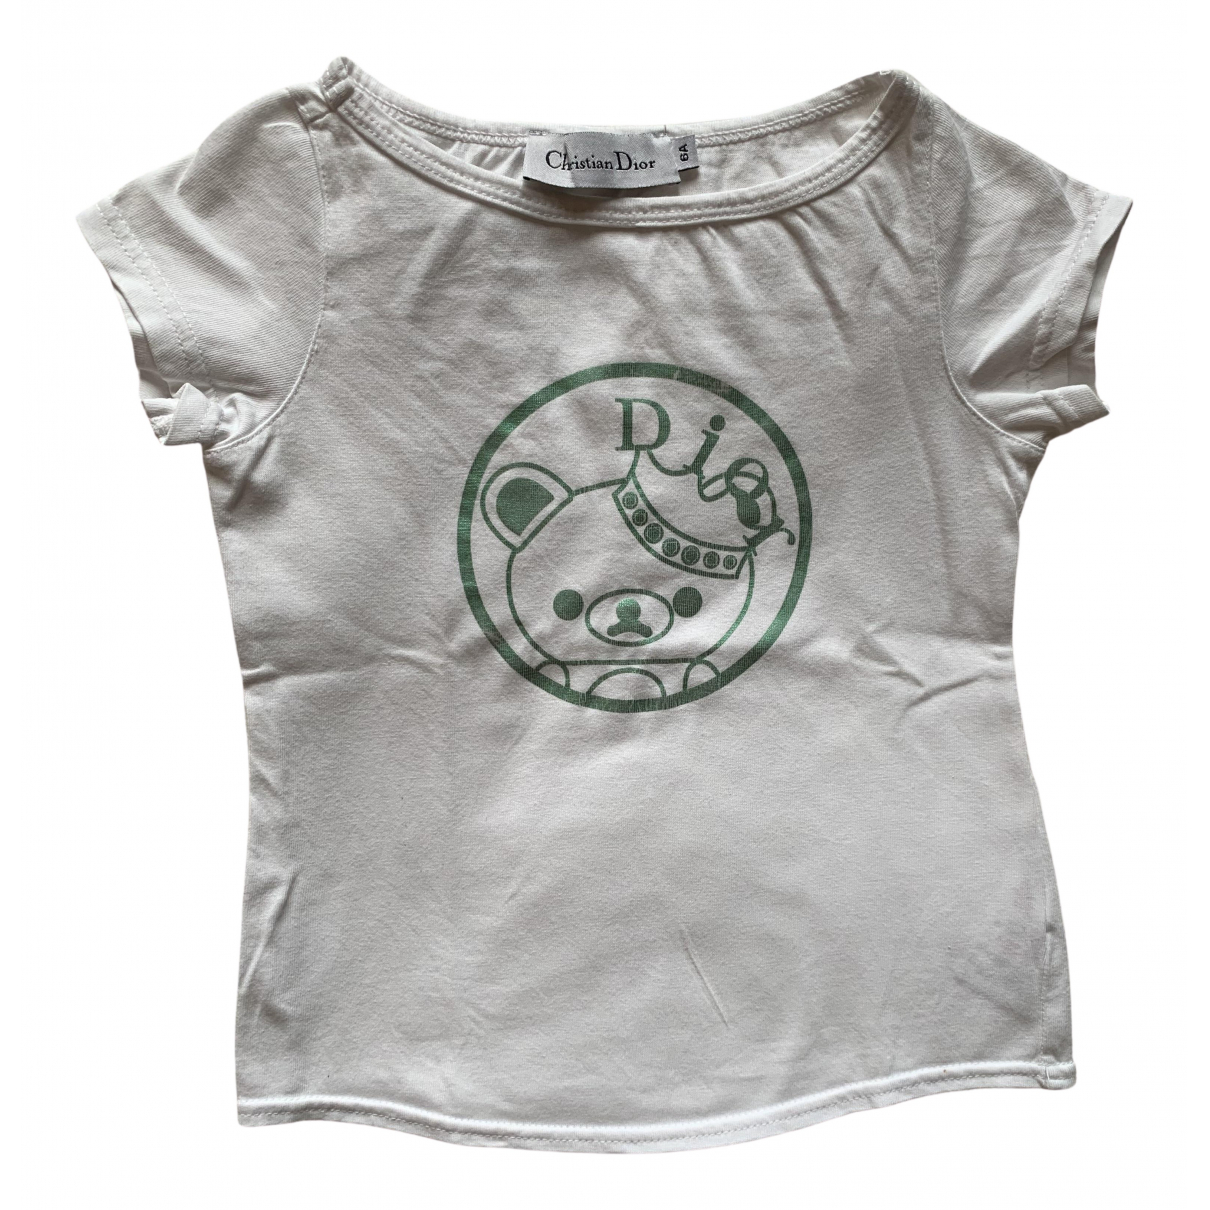 Dior \N White Cotton  top for Kids 6 years - up to 114cm FR